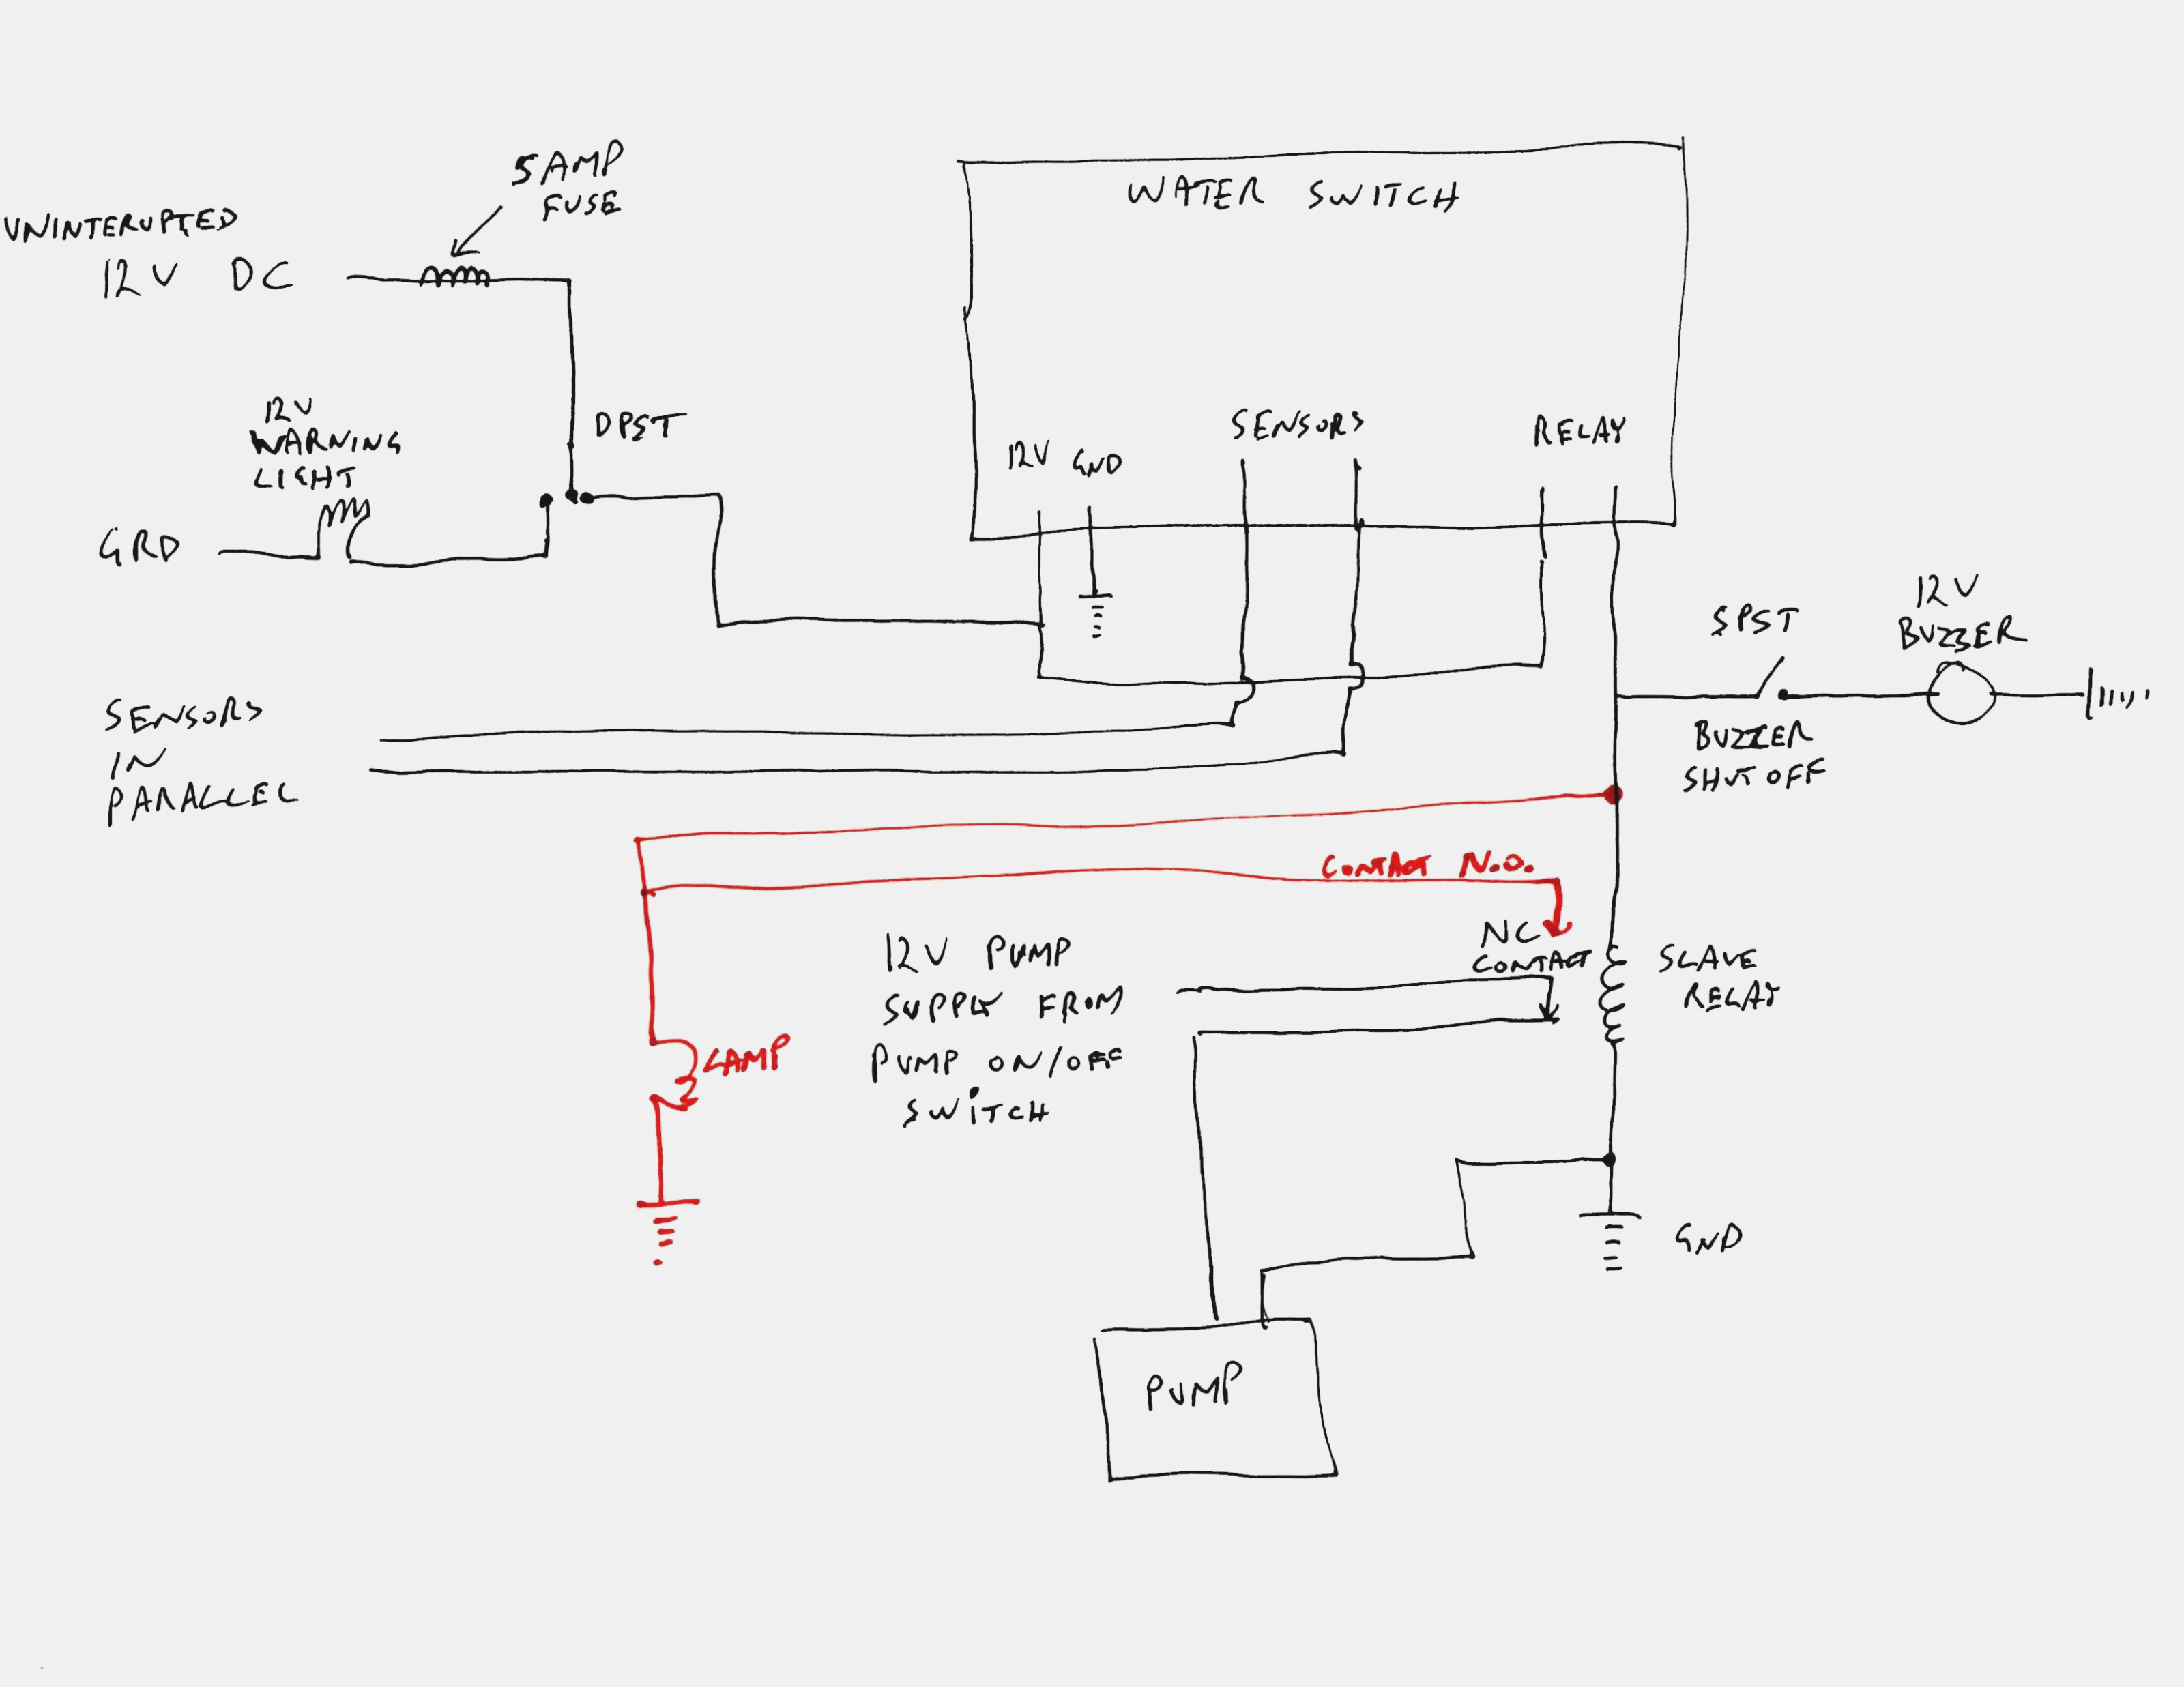 5Th Wheel Trailer Wiring Diagram - All Wiring Diagram - 5Th Wheel Trailer Wiring Diagram